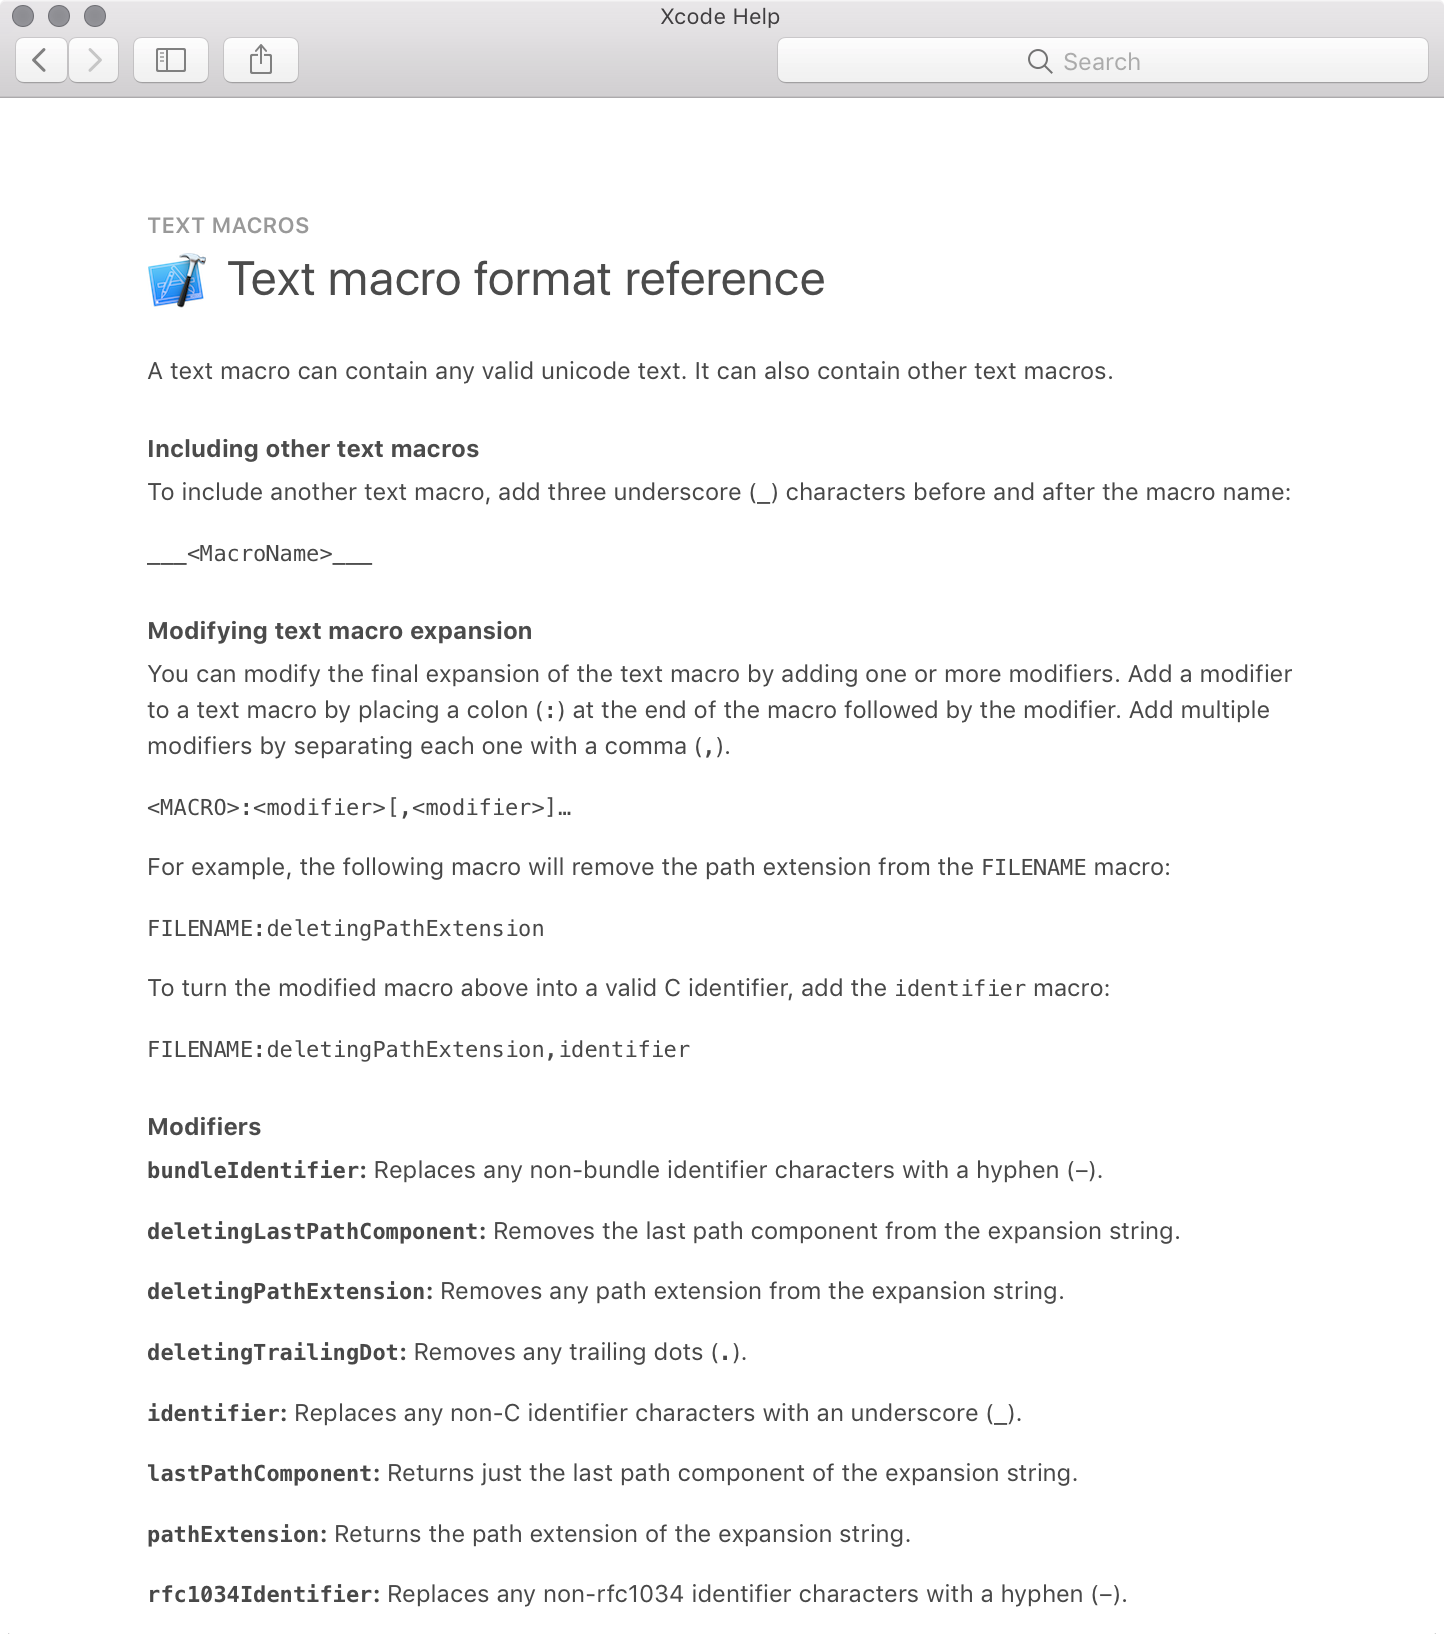 The Text Macro Format Reference page in Xcode Help